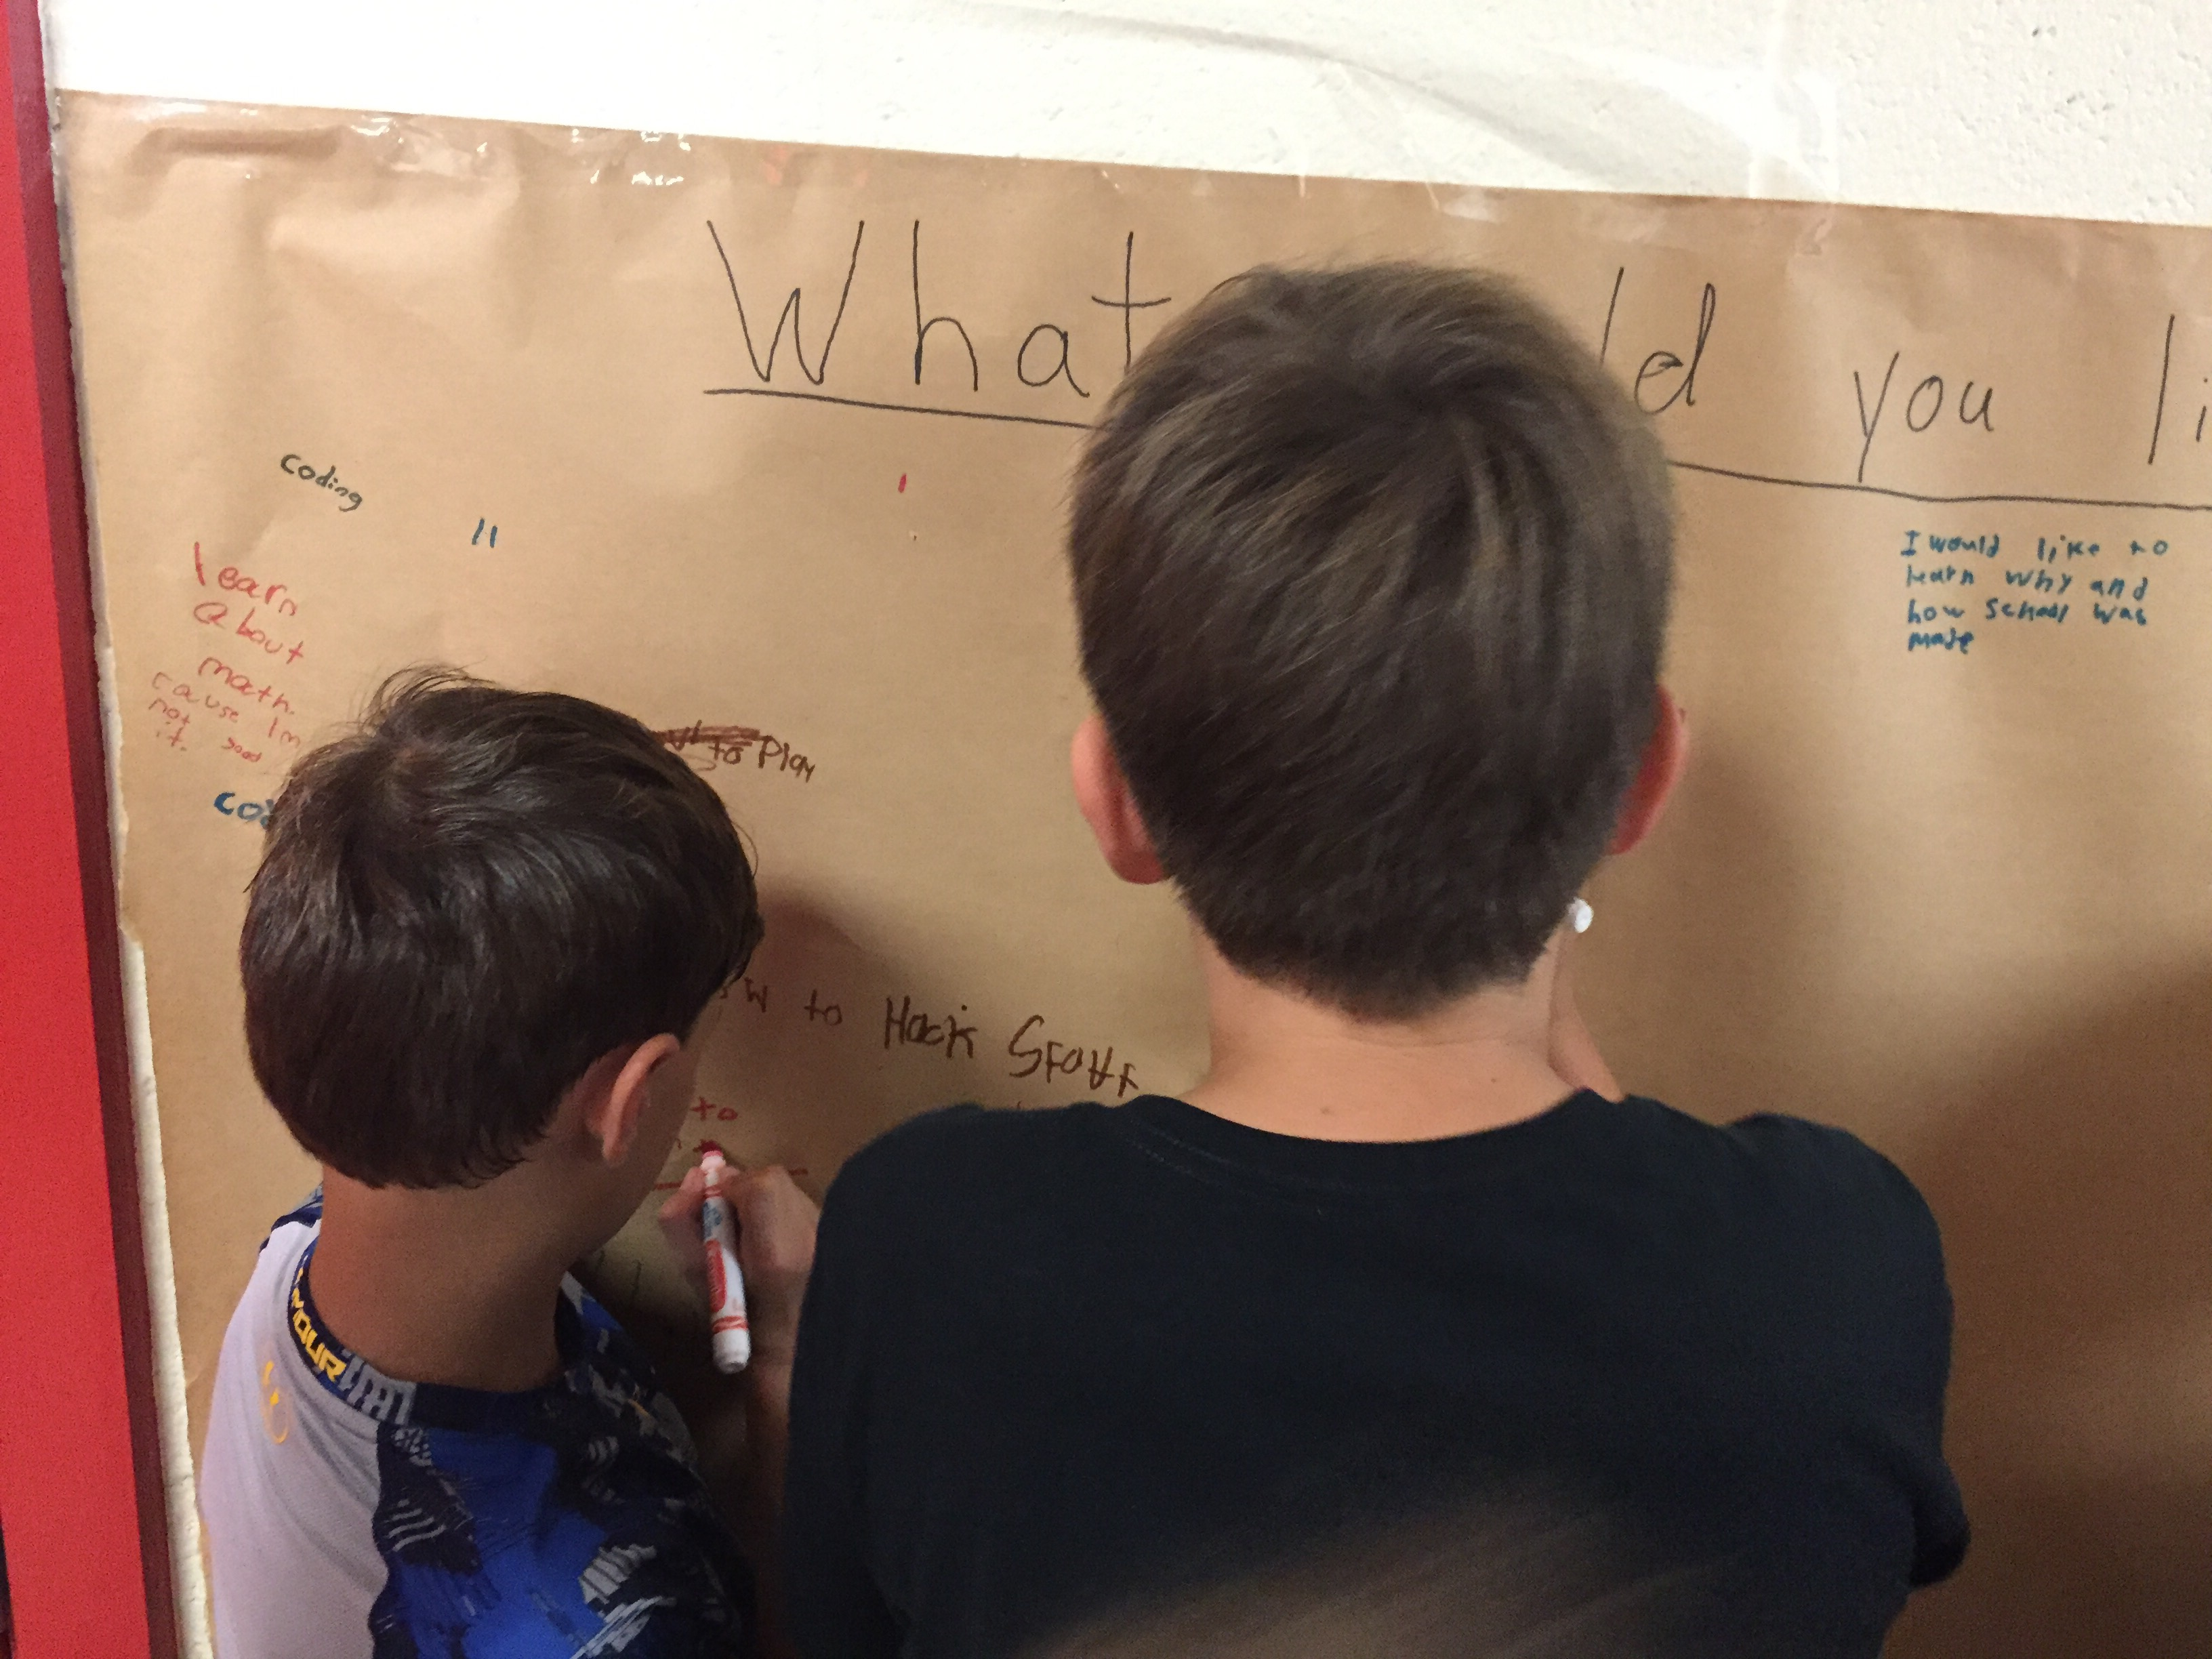 Graffiti wall activity - Families May Recall The Graffiti Wall Activity In The Last Pink Day Mr Gris Prepared Another Graffit Wall This Week For Student Voice